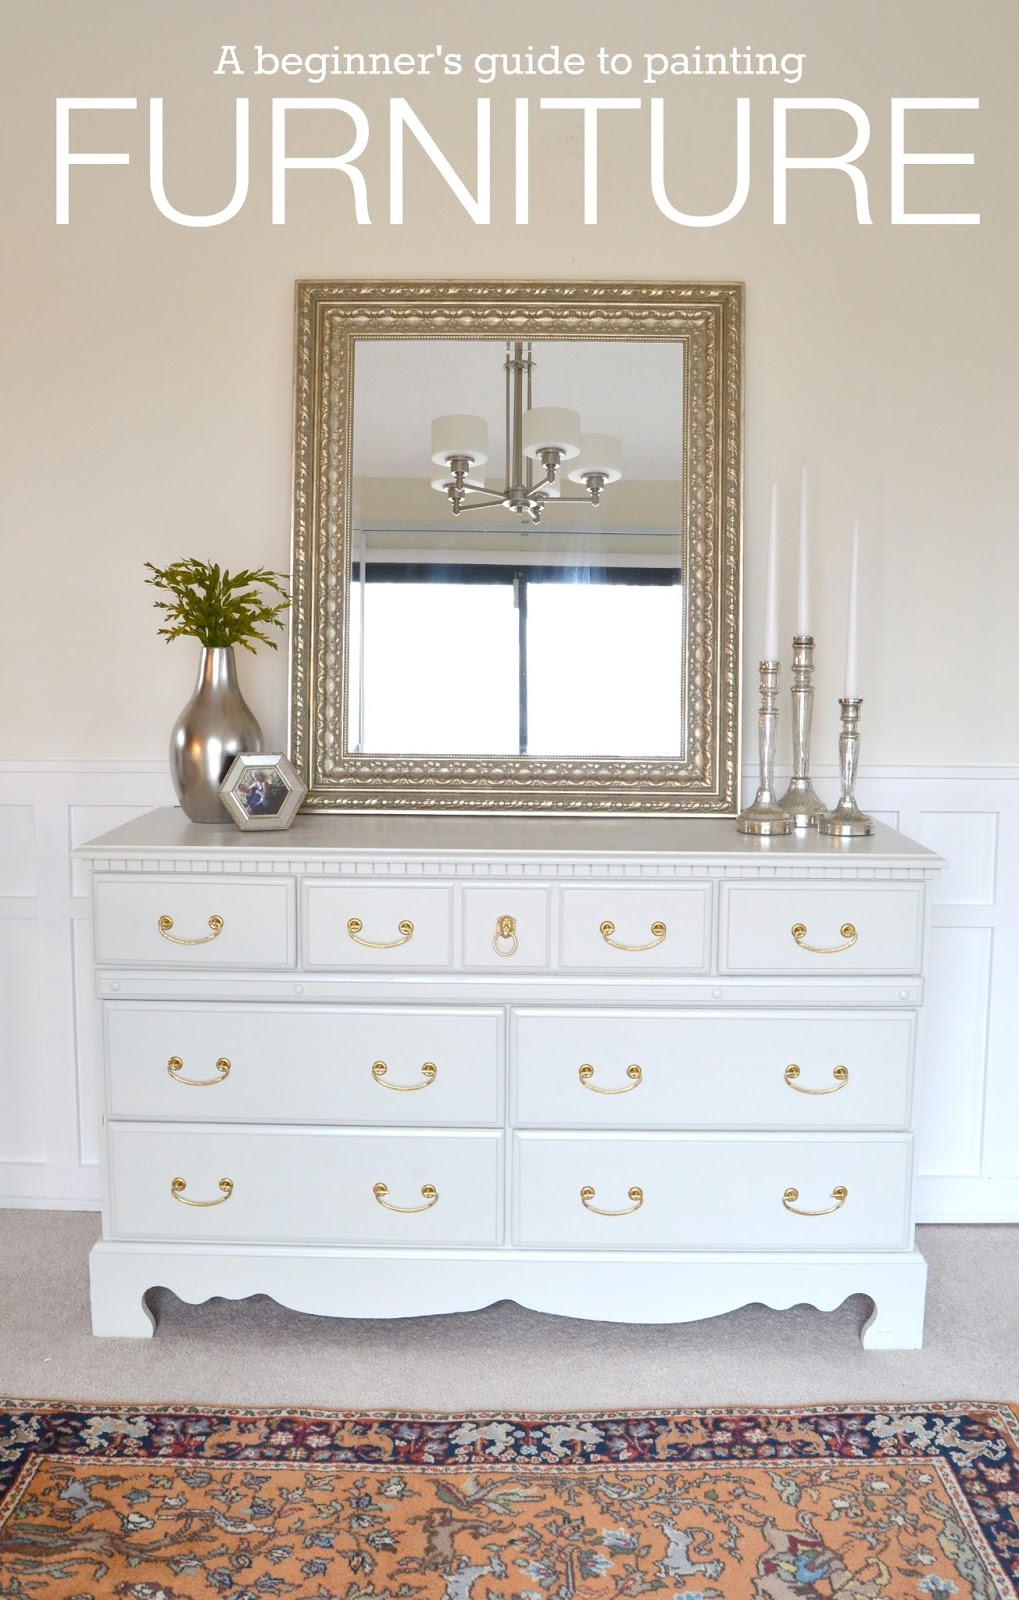 paint furnitureLiveLoveDIY How To Paint Furniture why its easier than you think